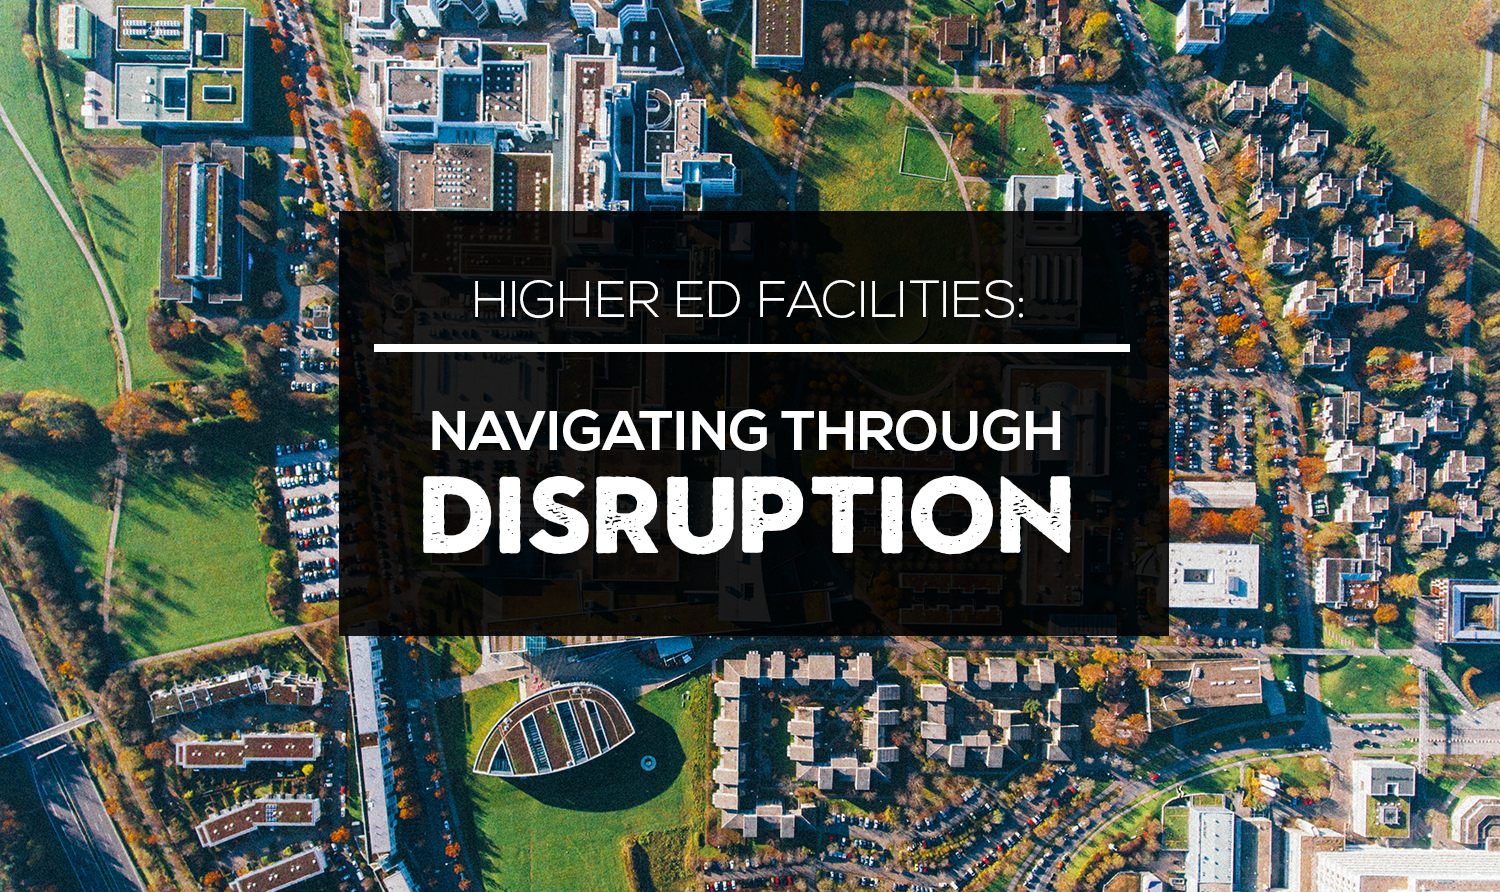 Higher Ed Facilities: Navigating Through Disruption